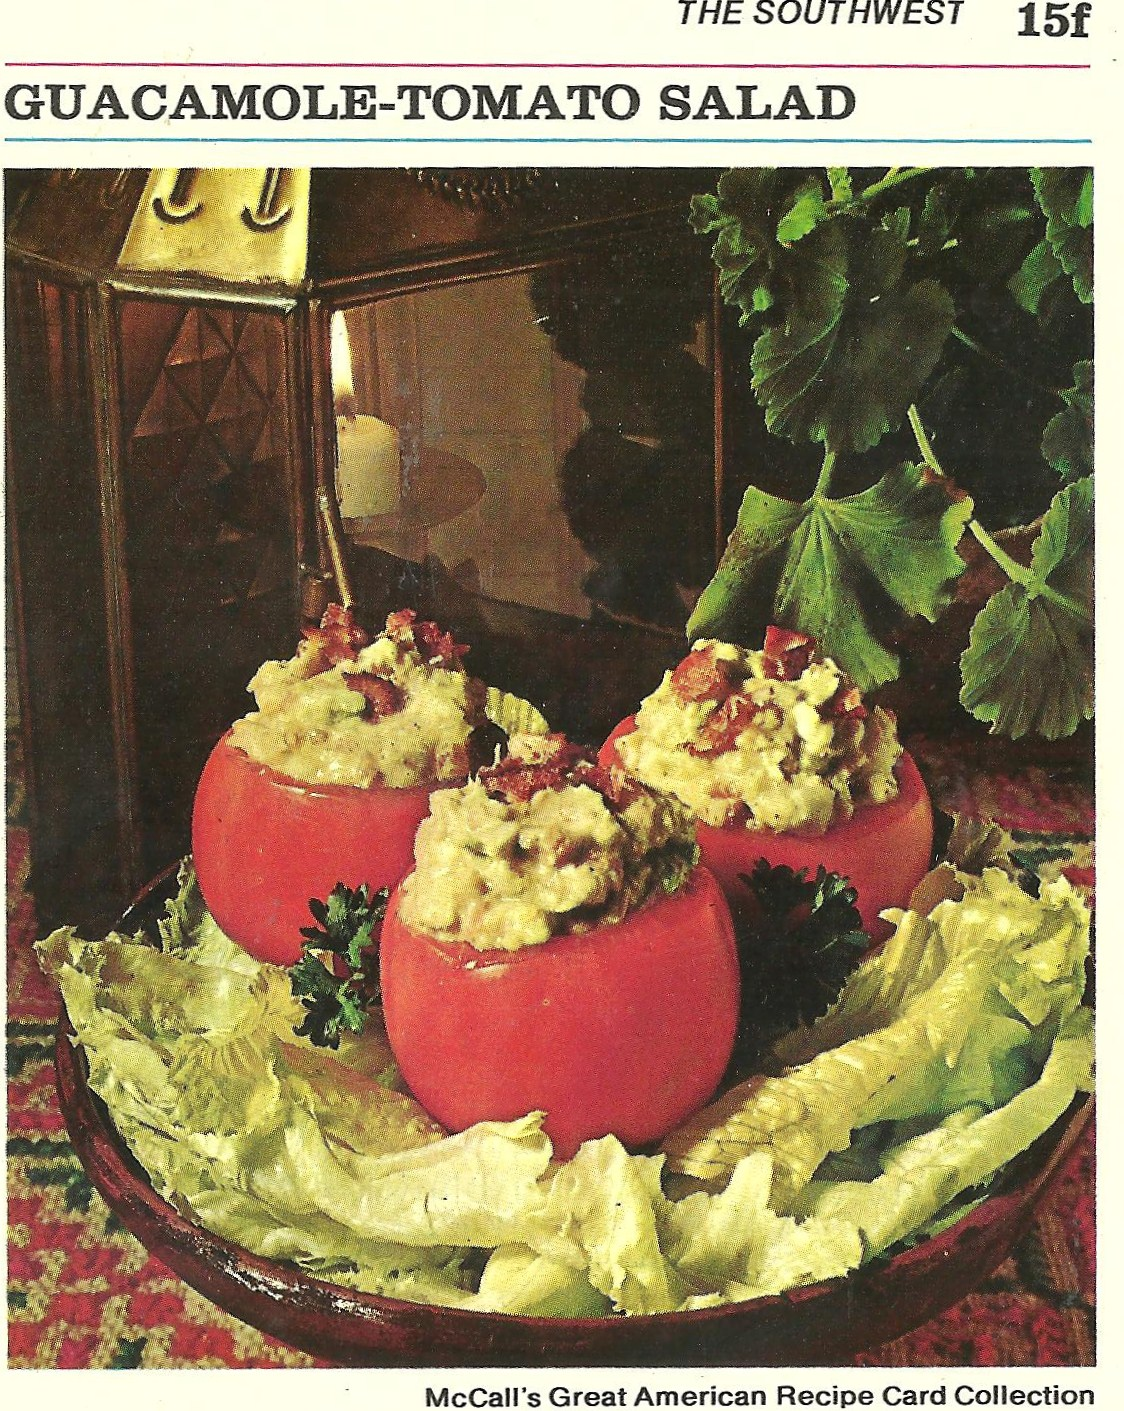 Bad and ugly of retro food this sundays chosen ones recipe cards 6 im hard pressed to find someone who will eat guacamole by the spoonful out of a hollowed tomato forumfinder Choice Image